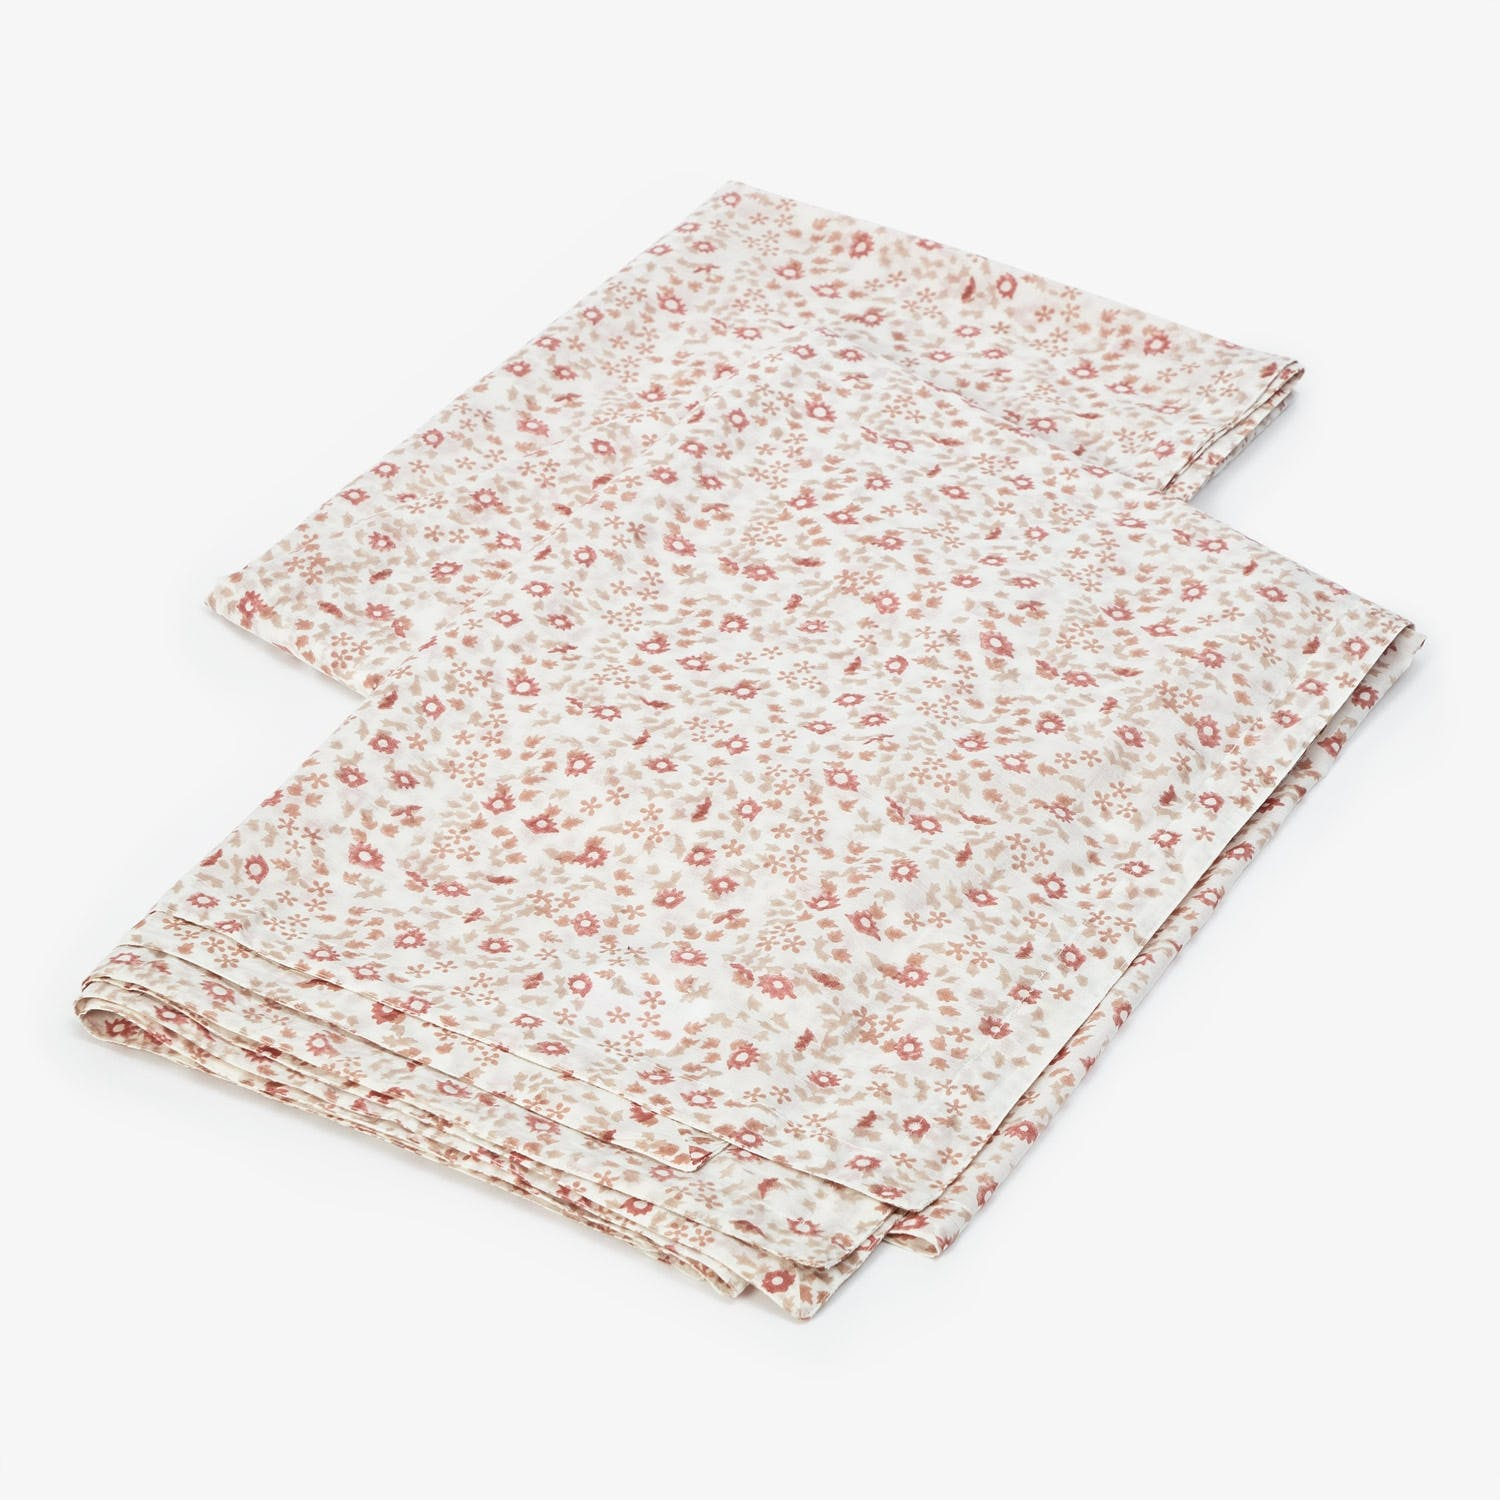 Kerry Cassill Queen Small Floral Cotton Voile Fitted Sheet Multi